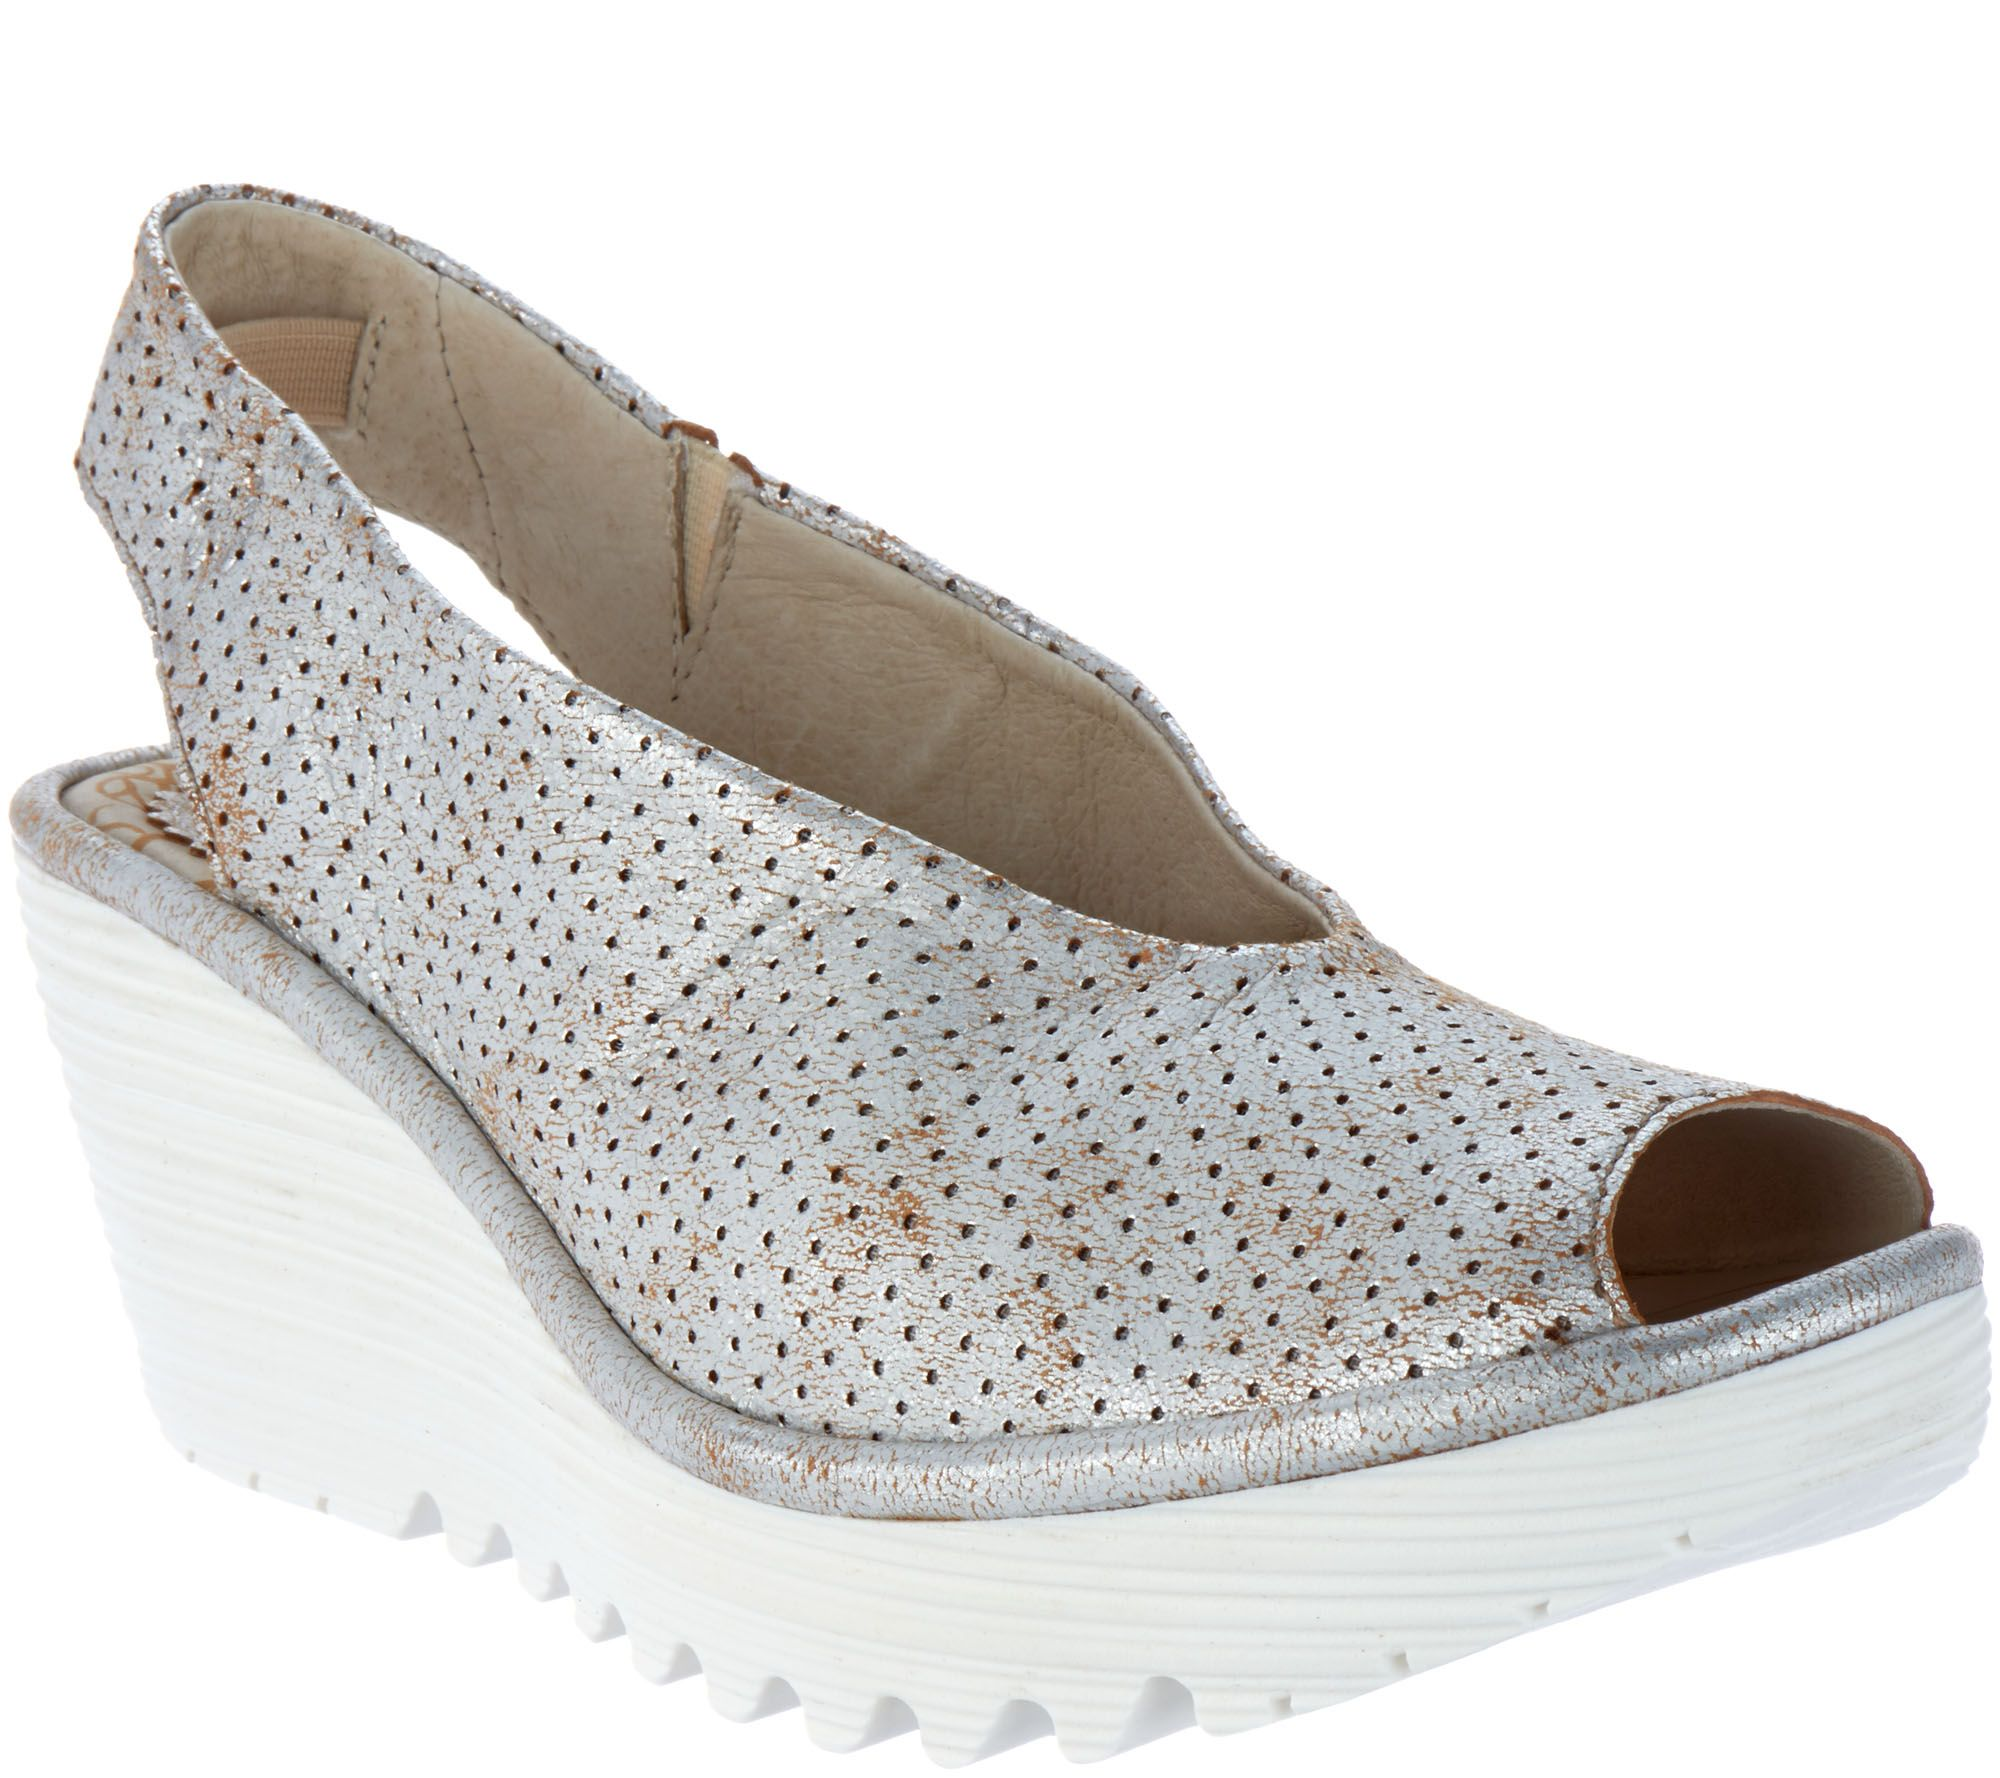 daee053f263b FLY London Leather Perforated Peep-toe Wedges - Yazu Perf - Page 1 — QVC.com